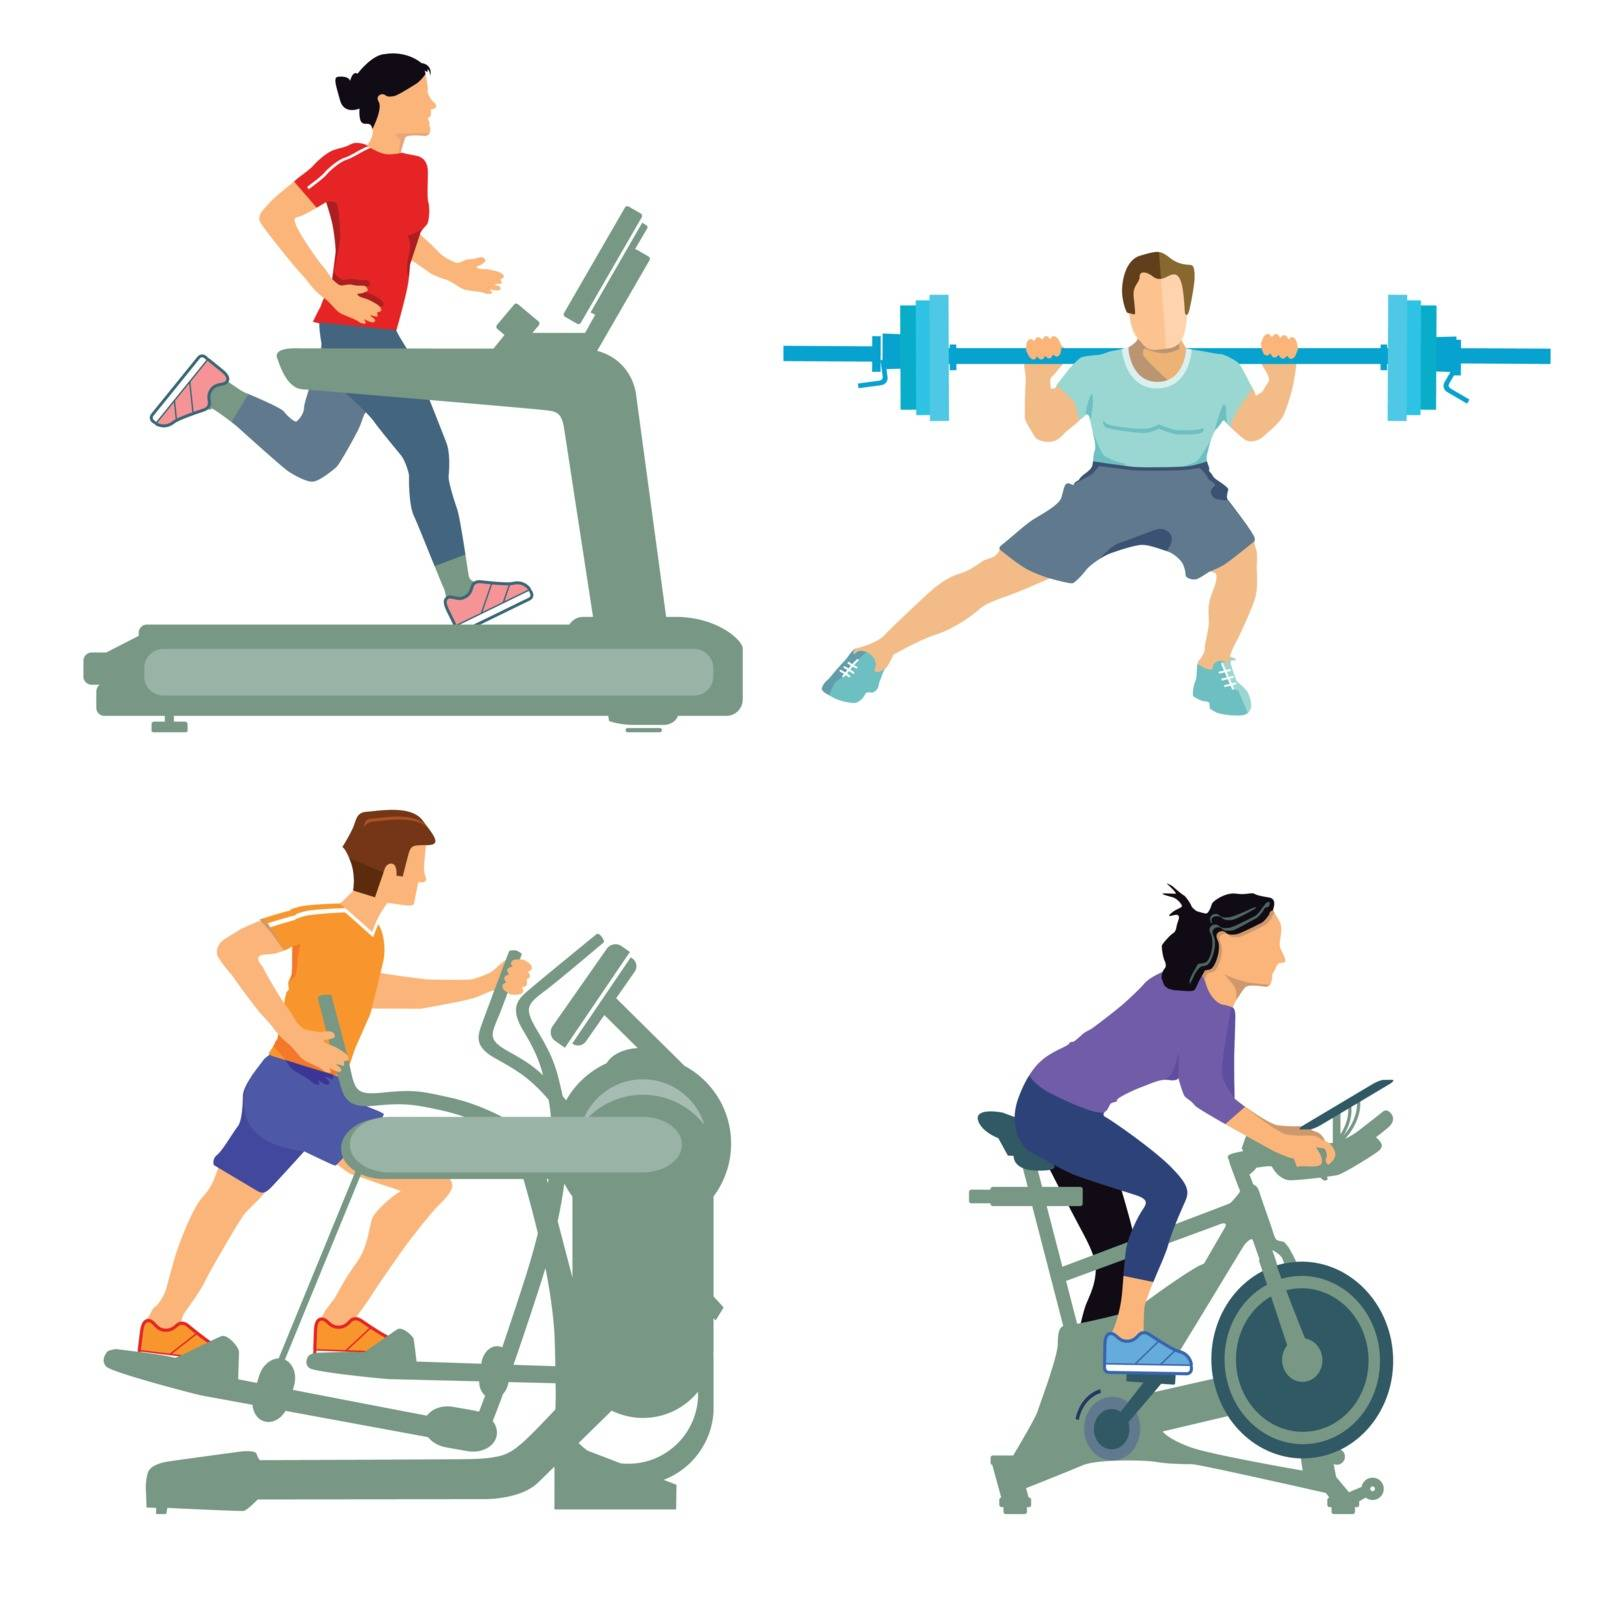 Gym with fitness equipment by scusi